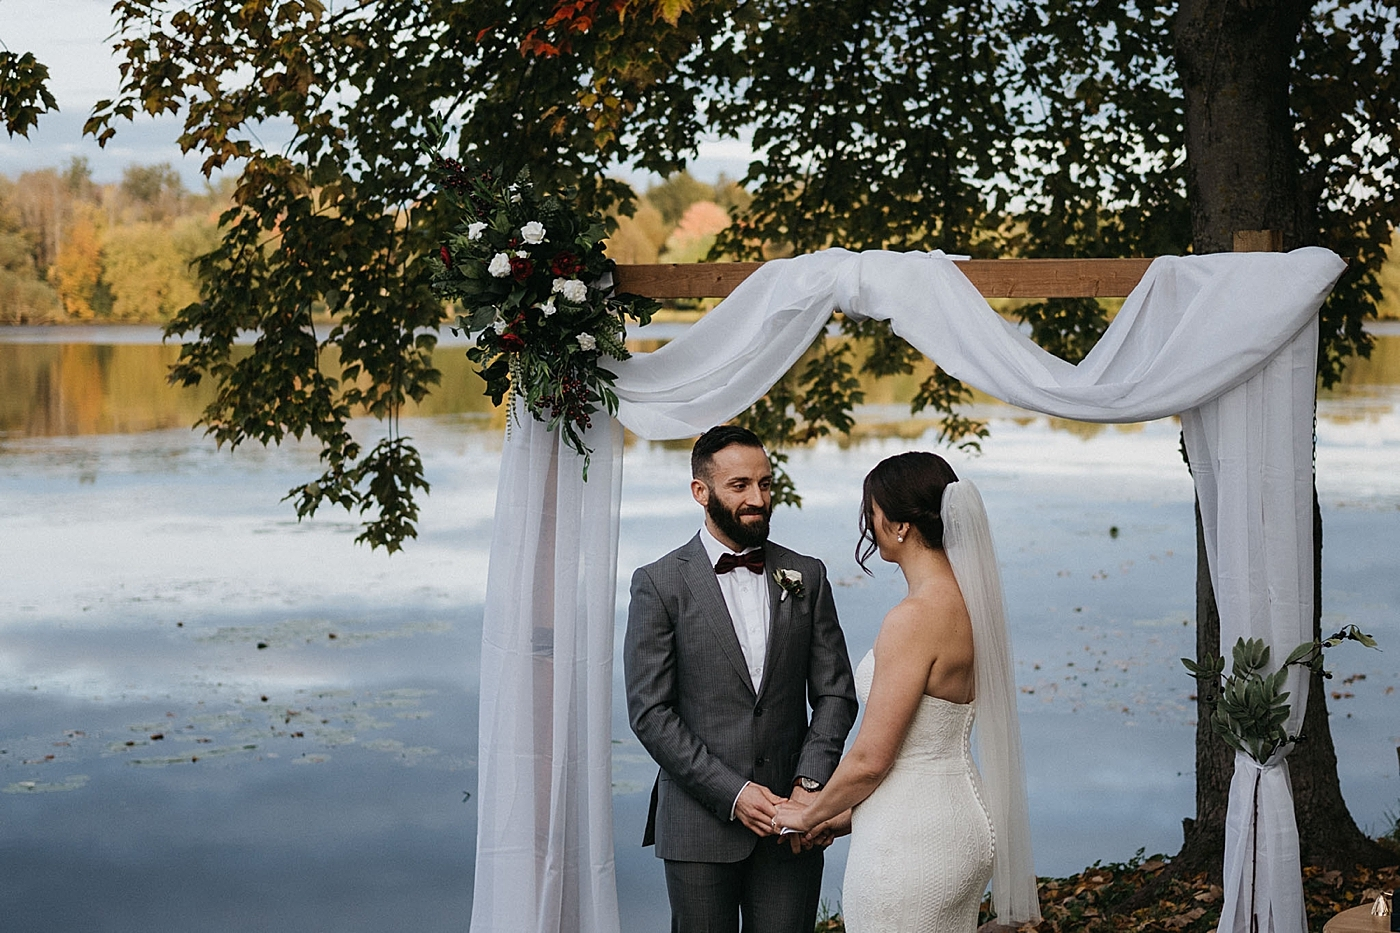 Ceremony - Ottawa and Ontario Elopement Photography